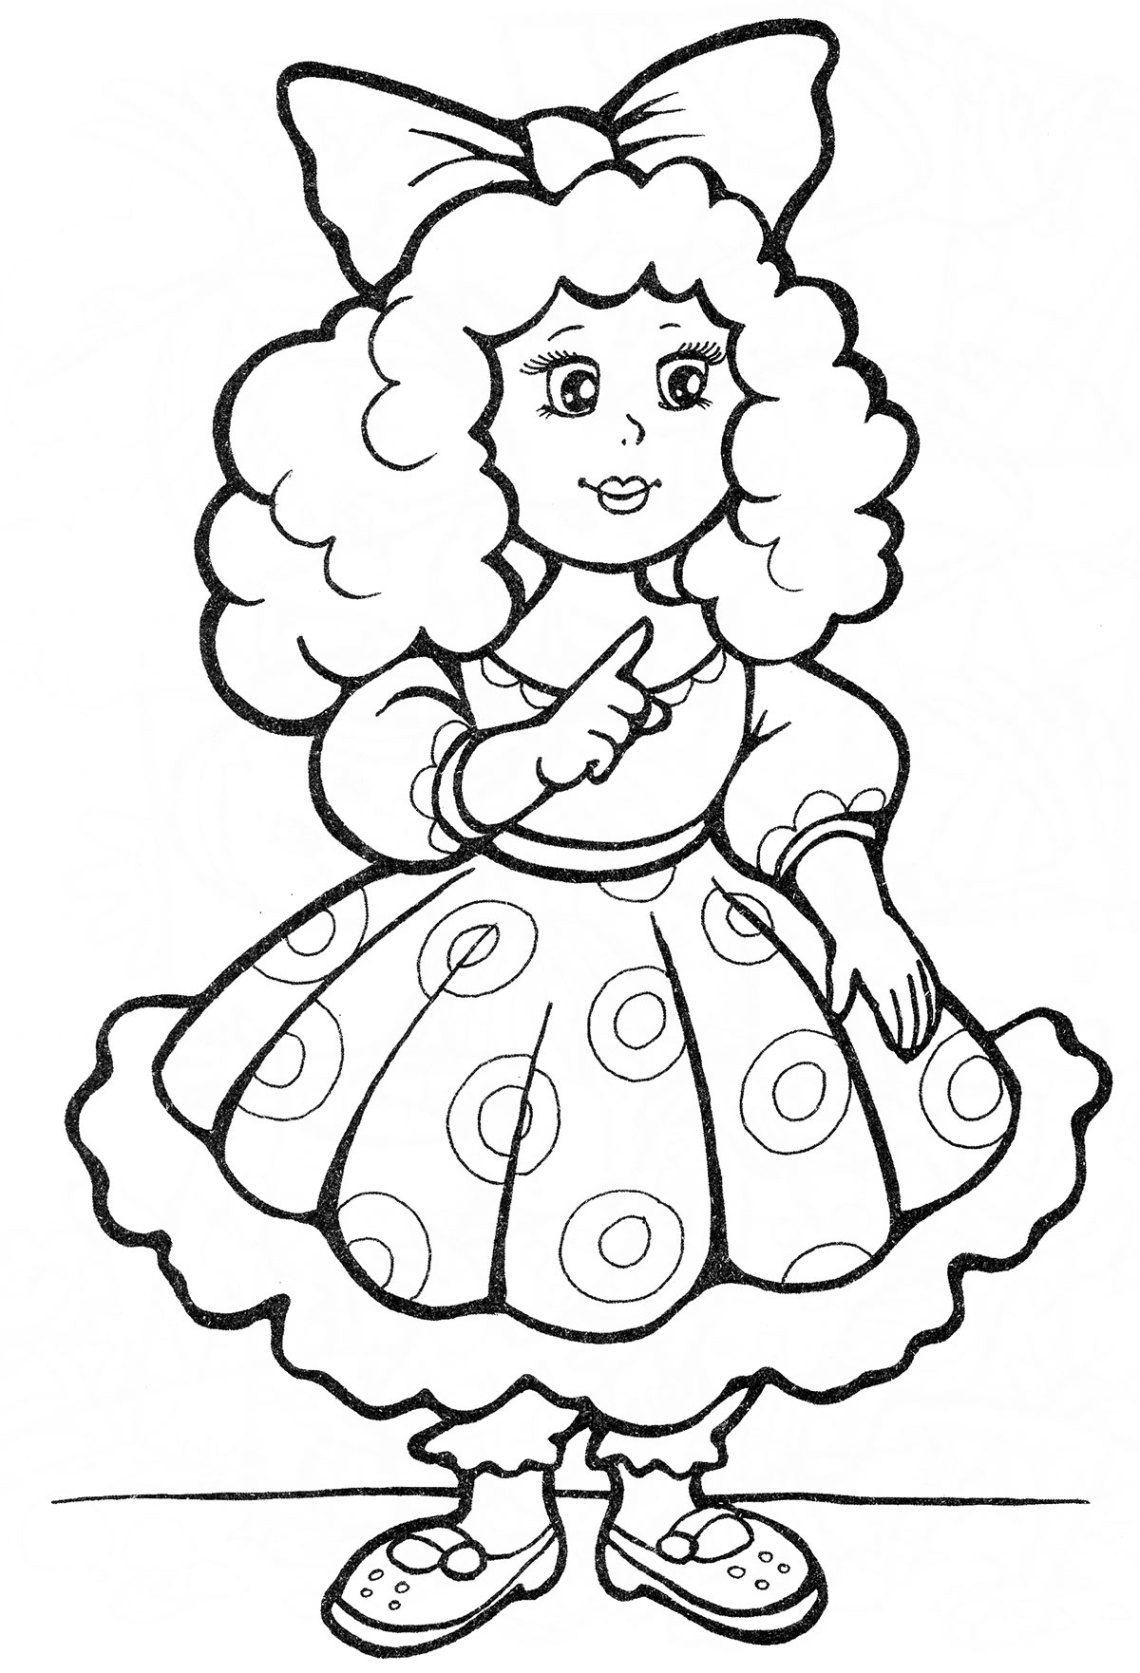 Coloring pages for children of 4-5 years to download and ... | coloring worksheets for kinder